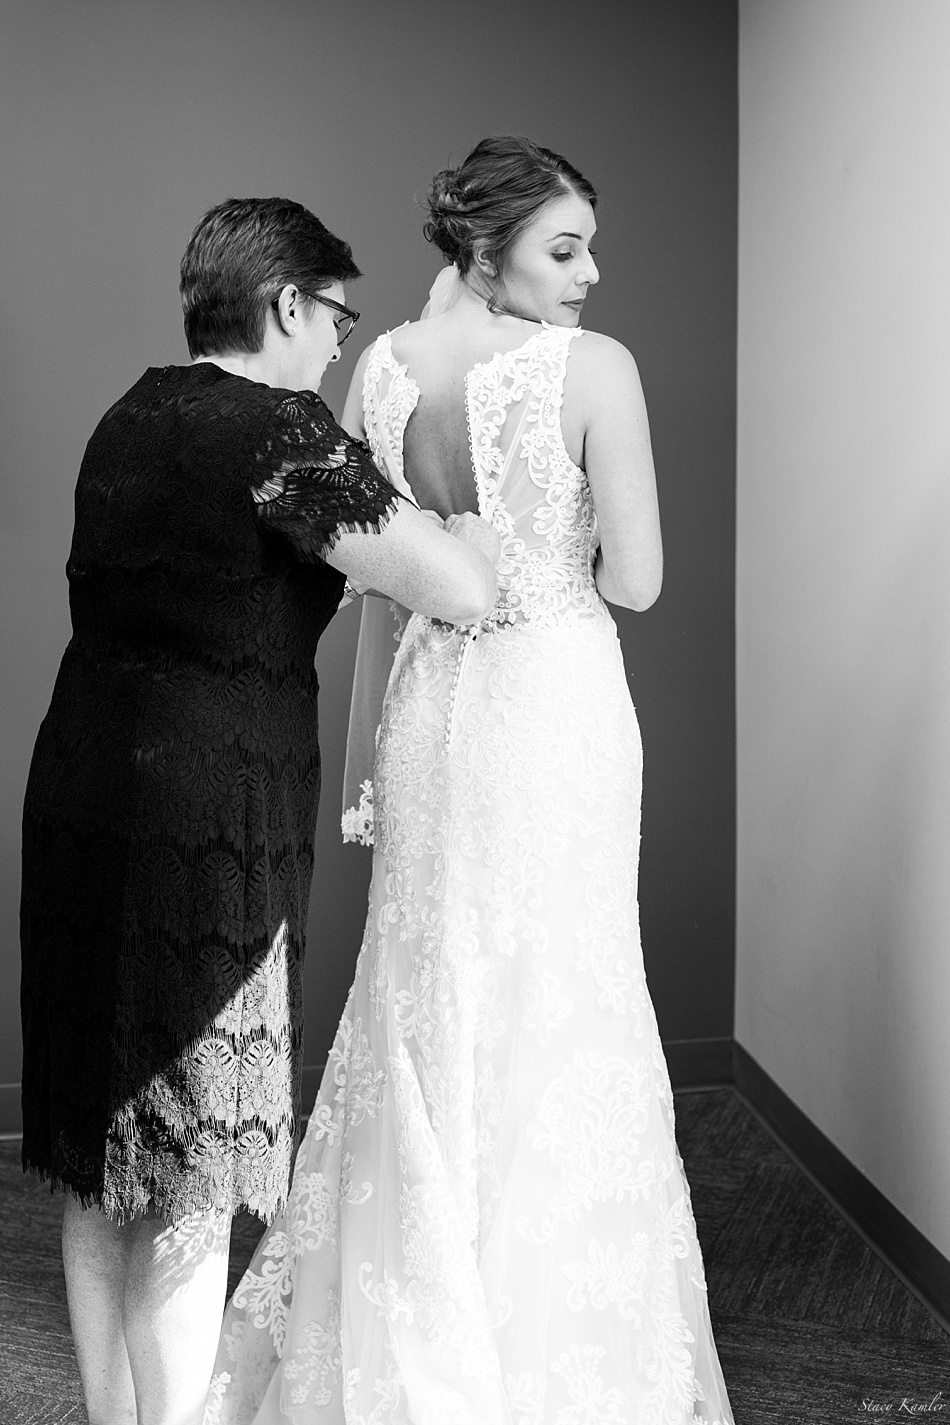 Bride Getting Dressed in a lace Dress